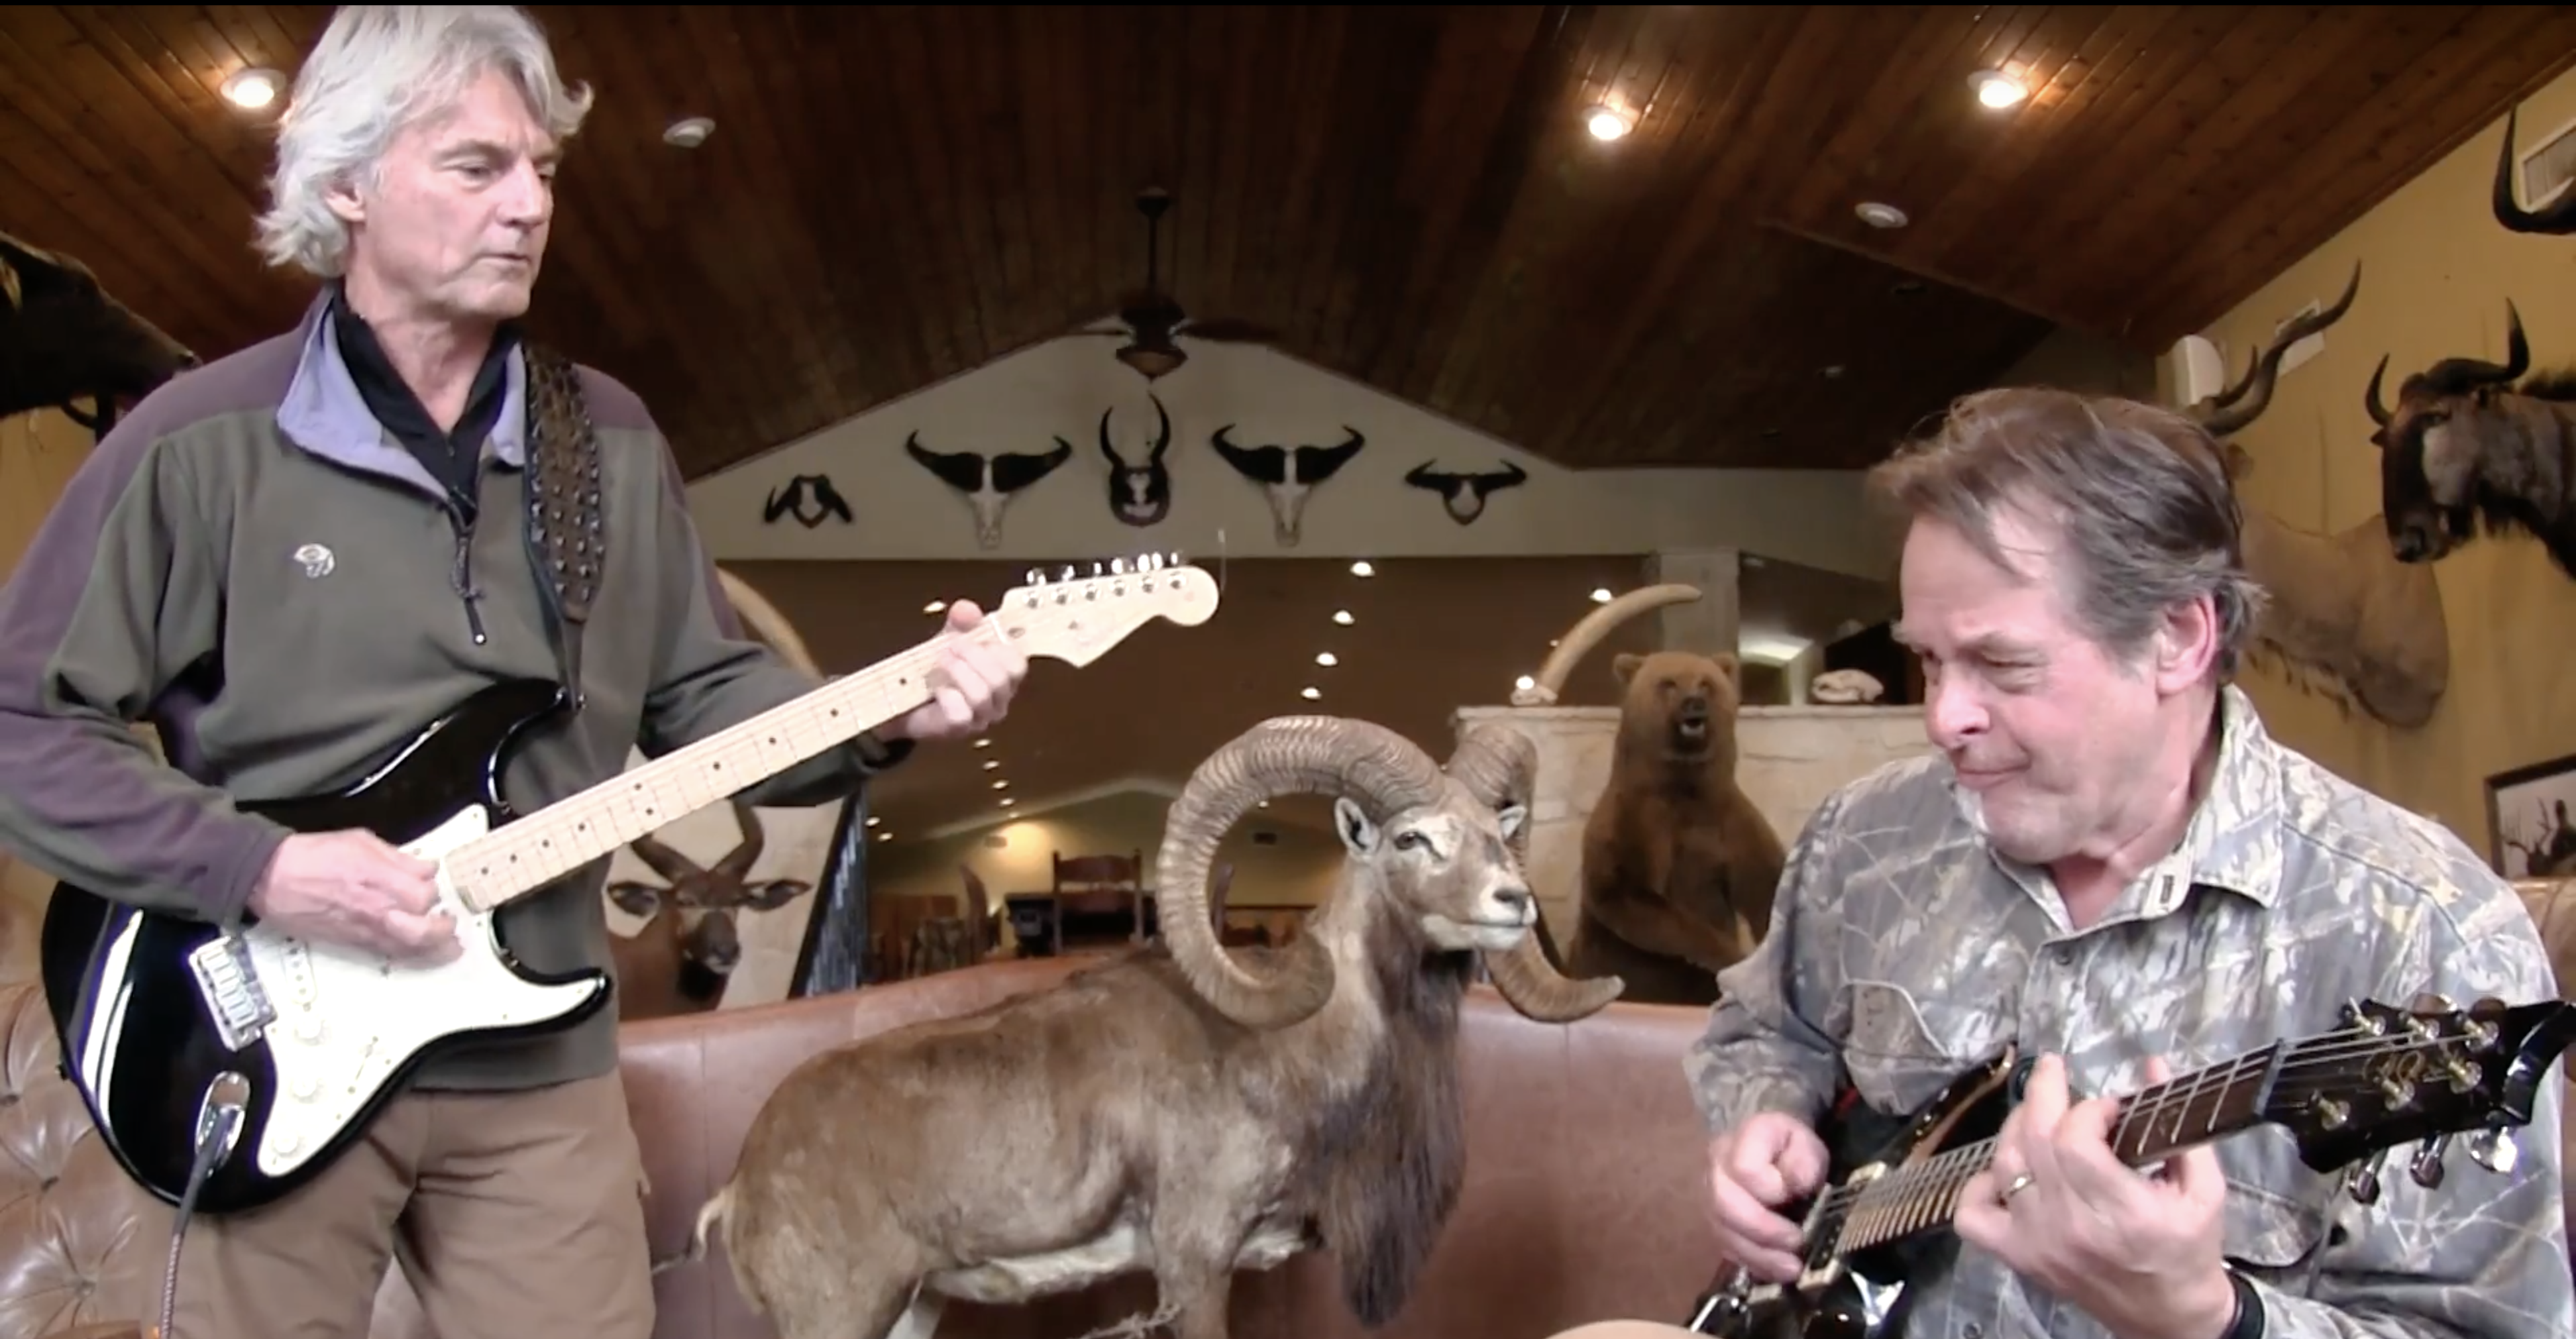 Nothing like an impromptu jam session between friends after a morning hunt! Starring Ted Nugent and J. Alain Smith!